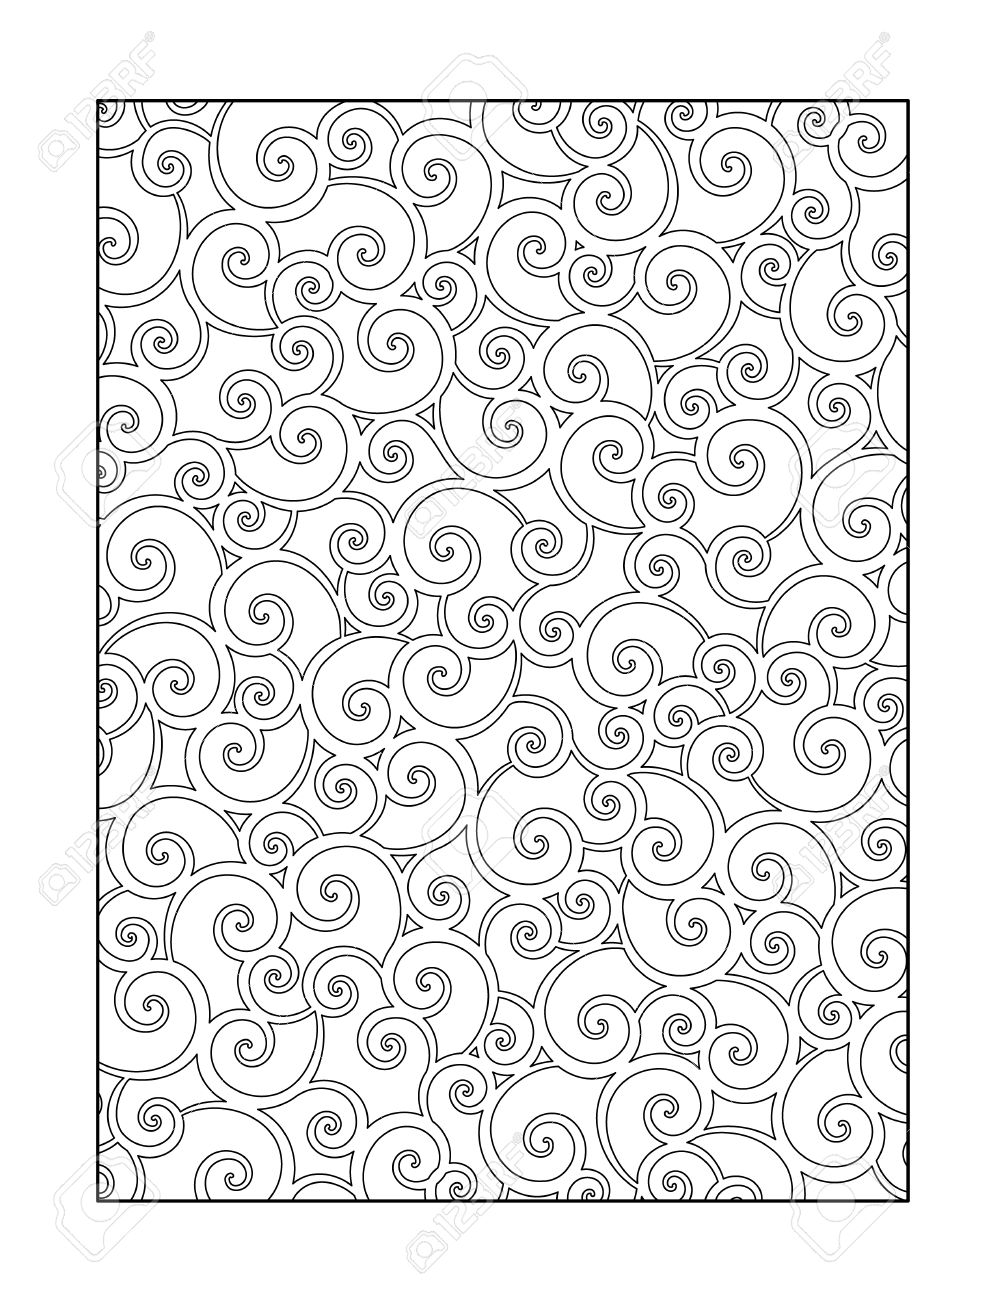 Free whimsical coloring pages for adults - Coloring Page For Adults Children Ok Too With Whimsical Swirls Pattern Or Monochrome Decorative